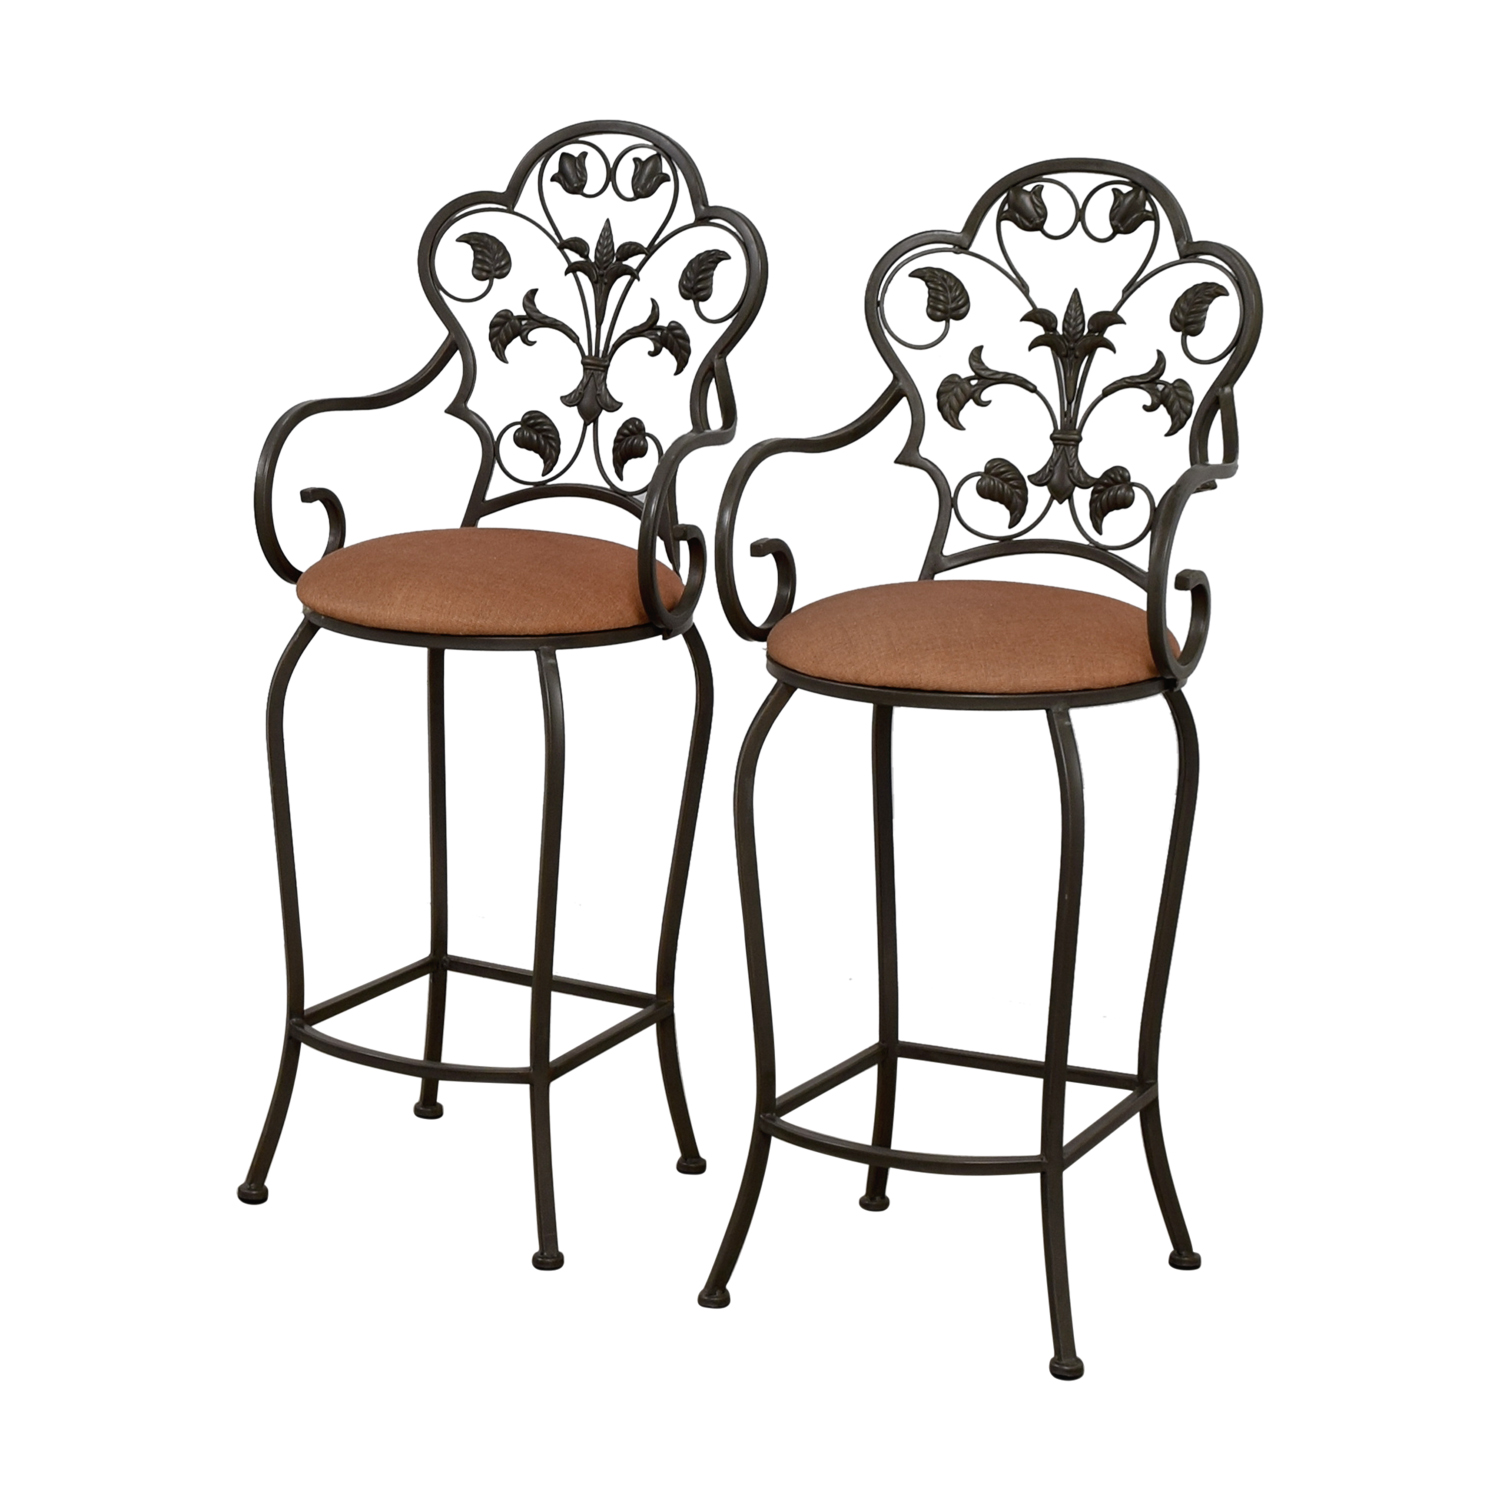 Pleasing 70 Off Scrolled Metal Folding Back Bar Stools Chairs Alphanode Cool Chair Designs And Ideas Alphanodeonline